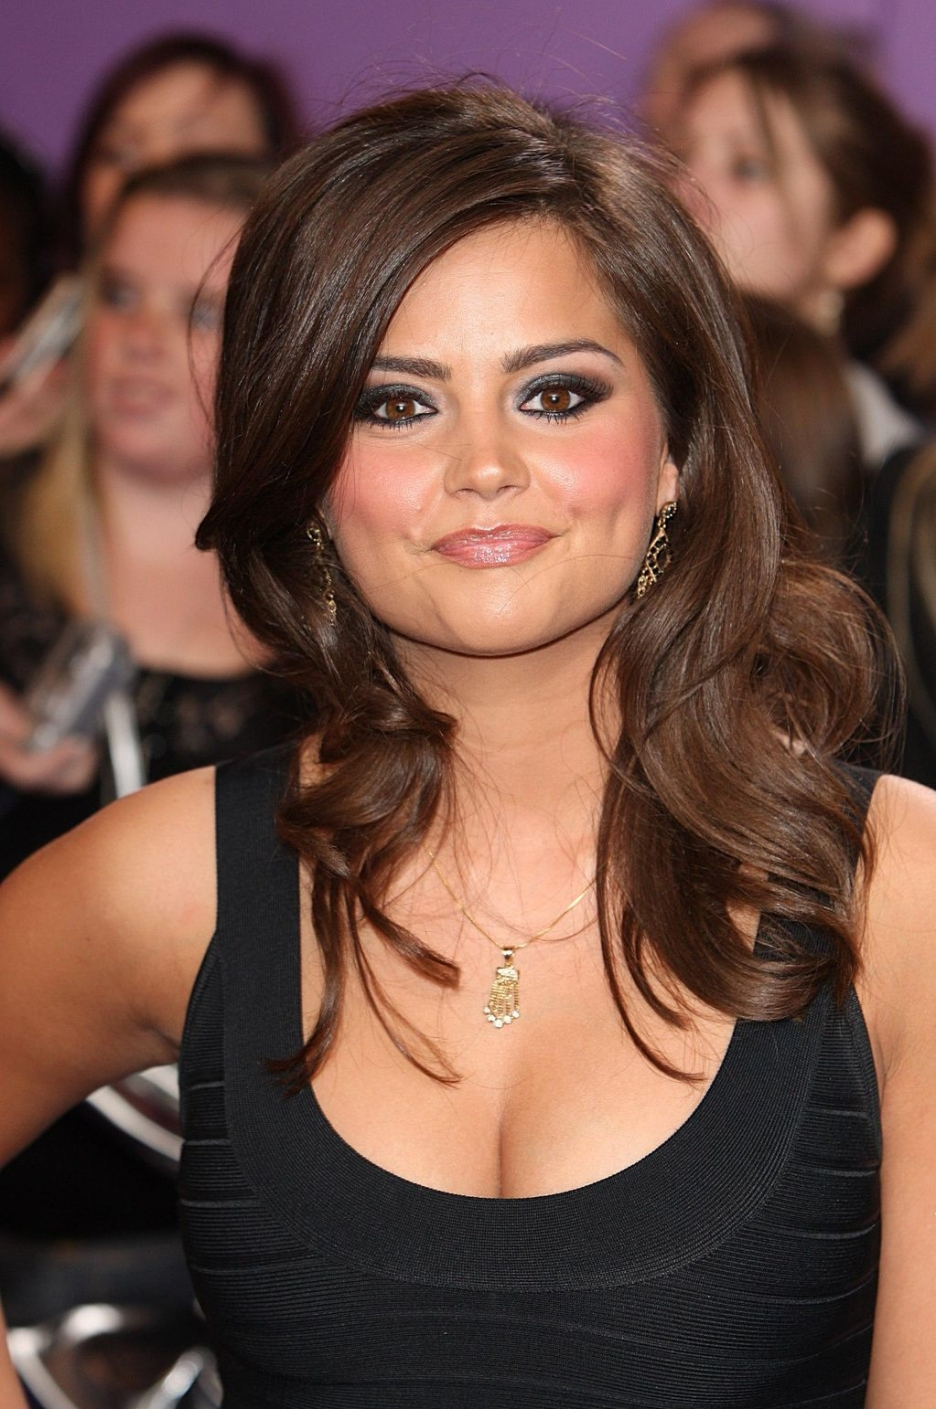 Pics Jenna-Louise Coleman nudes (63 foto and video), Topless, Hot, Instagram, butt 2006